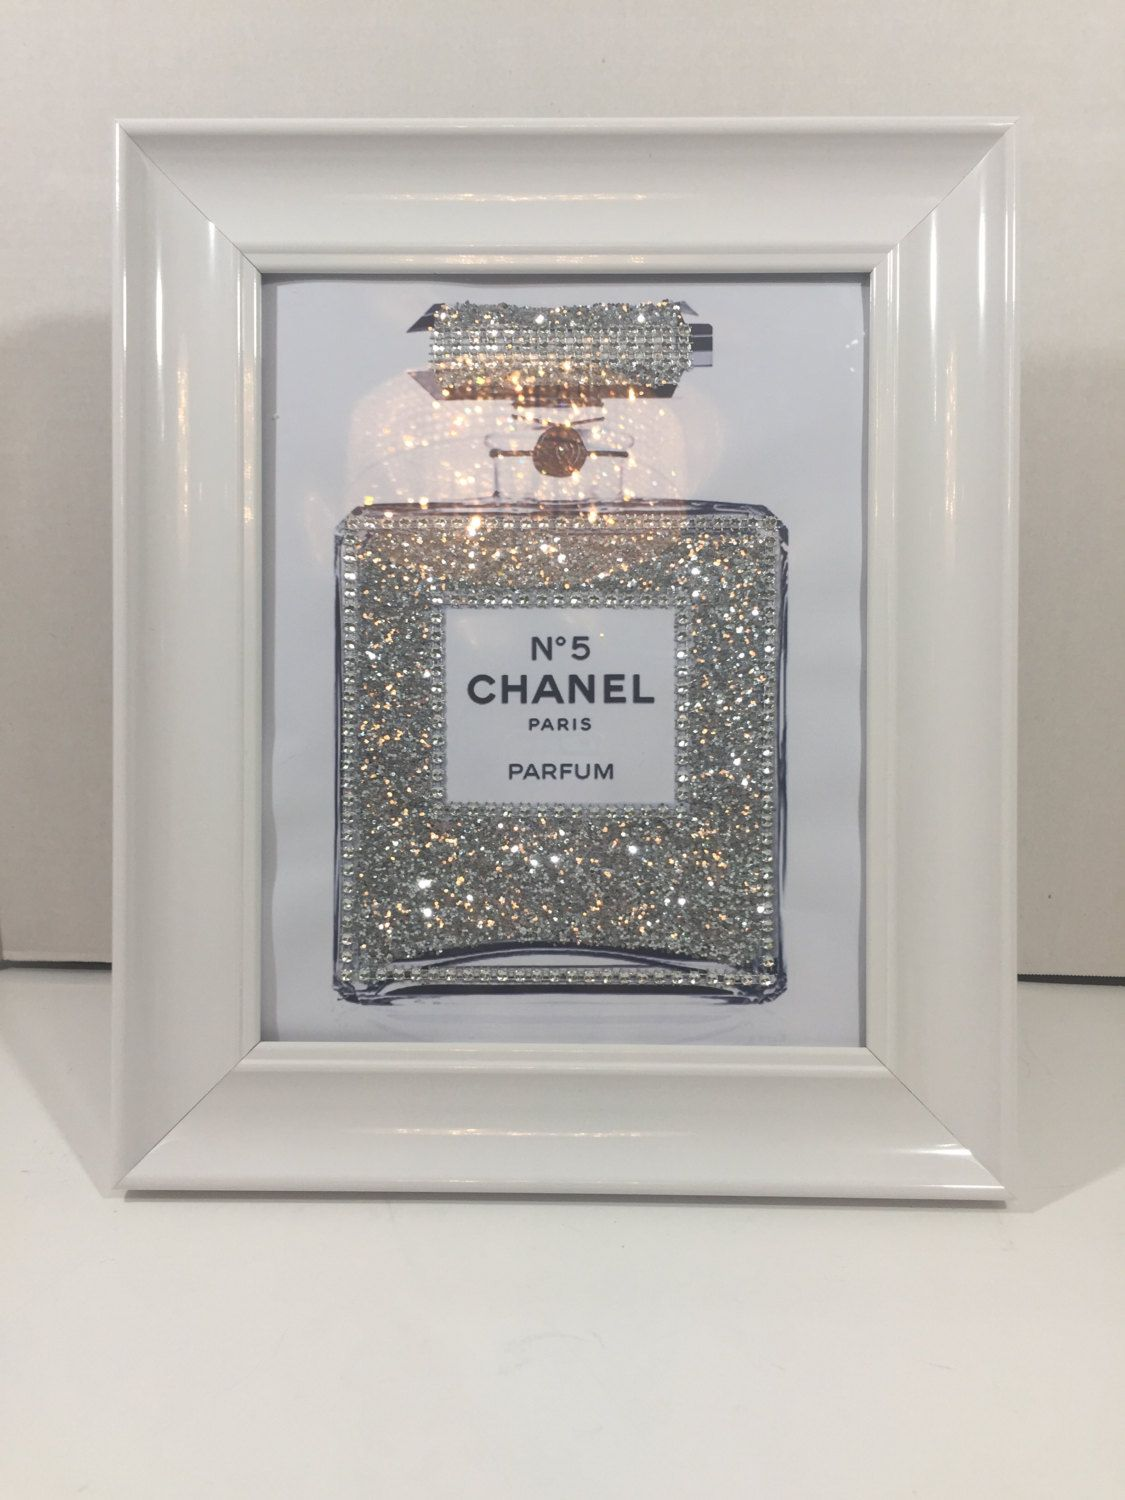 framed chanel art perfume bottle print blinged up in silver glitter and crystals white glossy frame